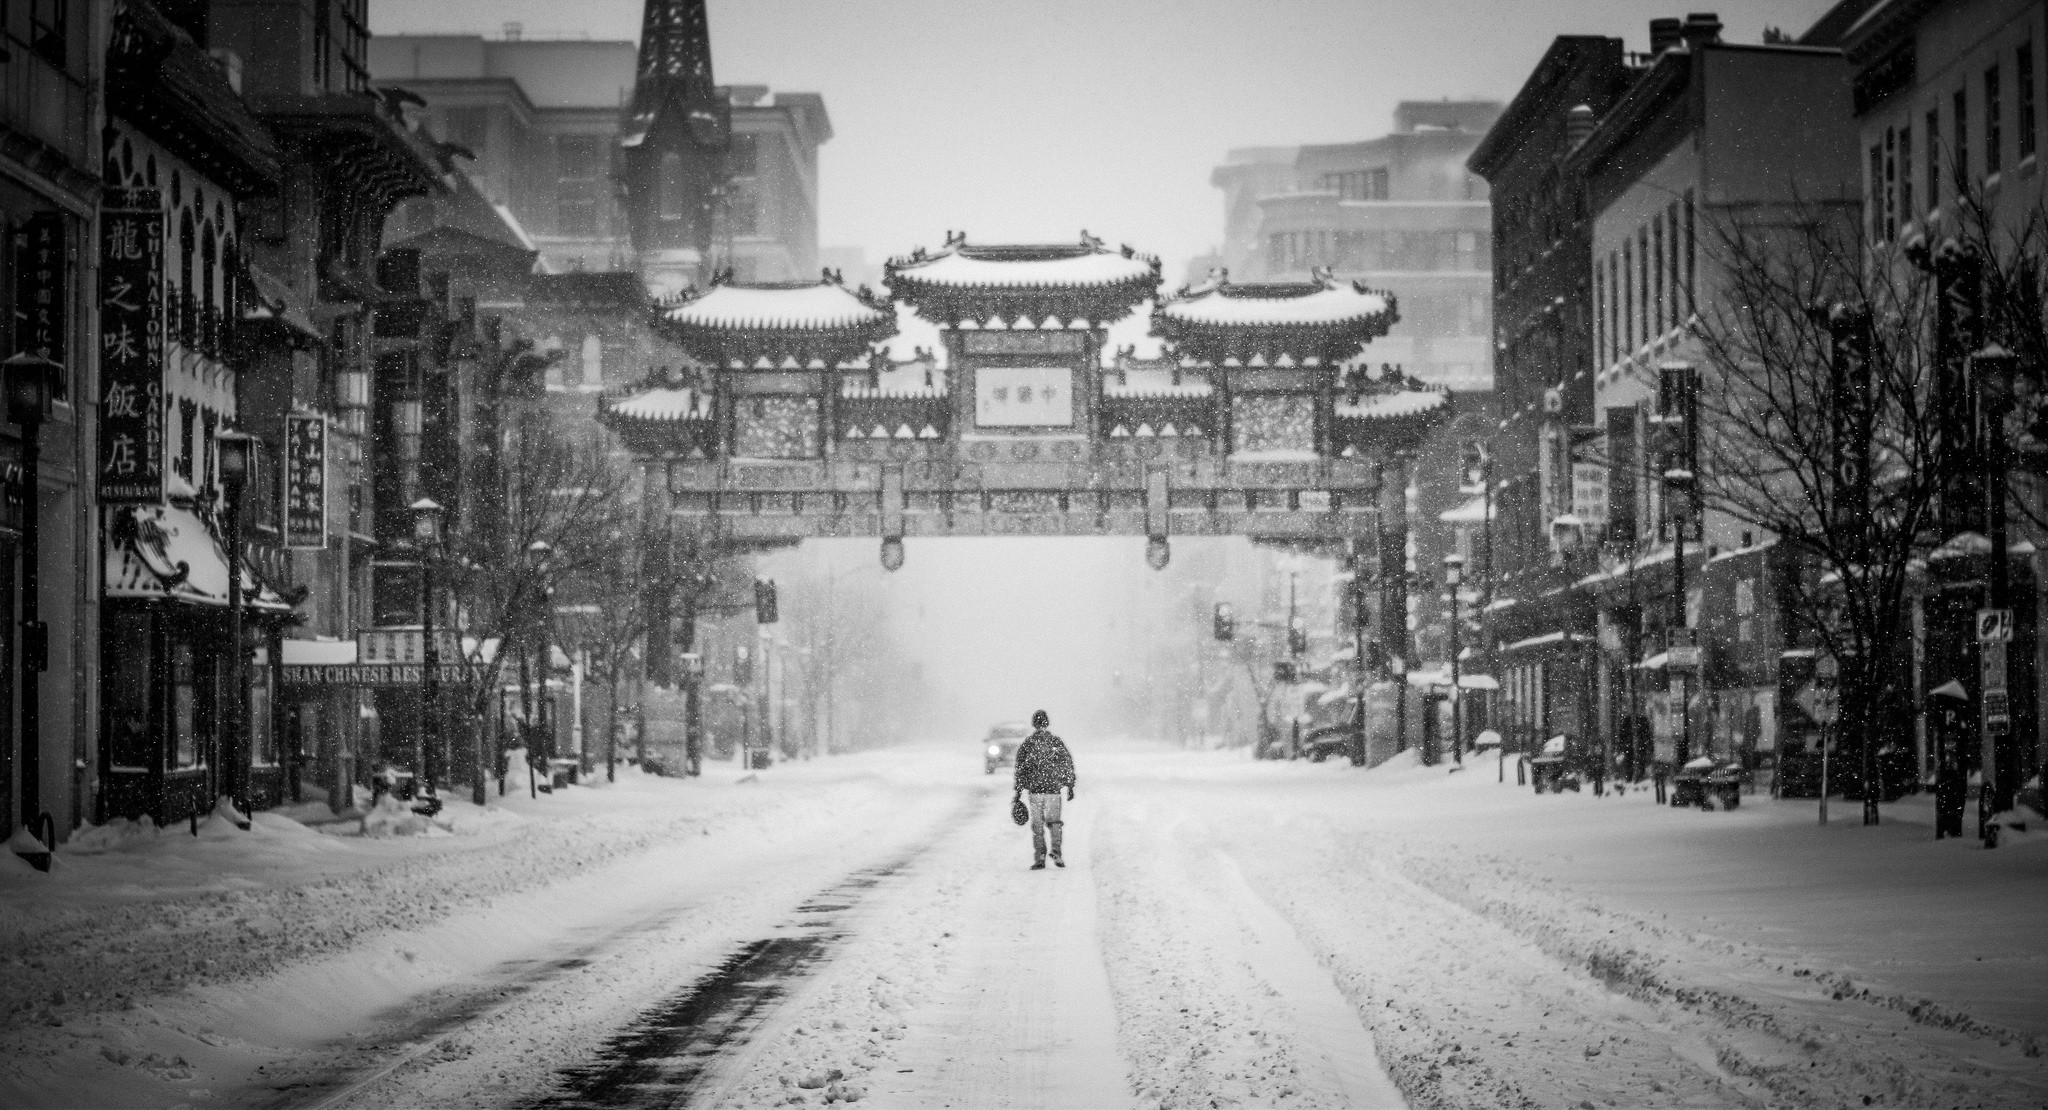 Free Images : person, cold, black and white, architecture, road, street,  car, building, alley, city, cityscape, asian, store, weather, lane, season,  flake, …